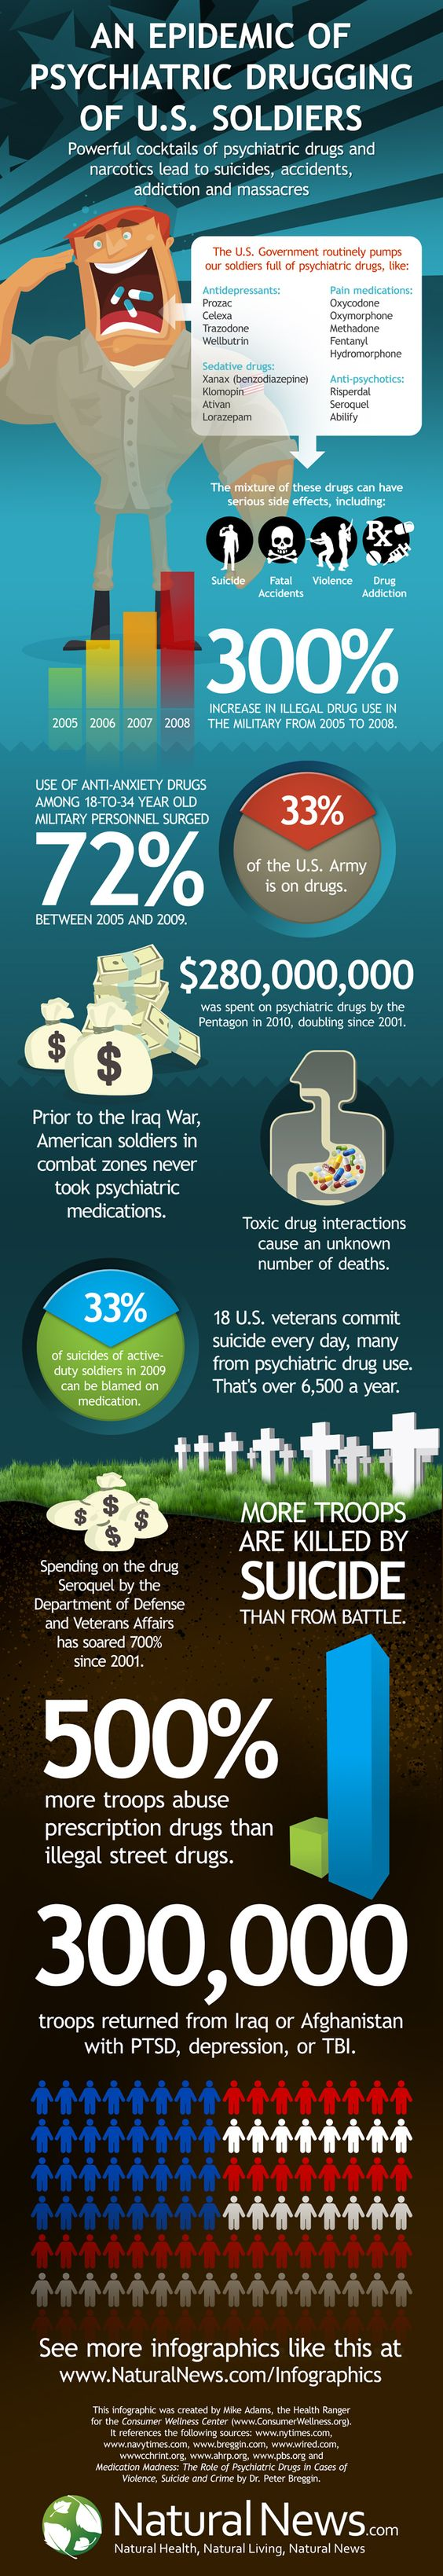 An Epidemic of Psychiatric Drugging of U.S. Soldiers - Infographic by the Health Ranger